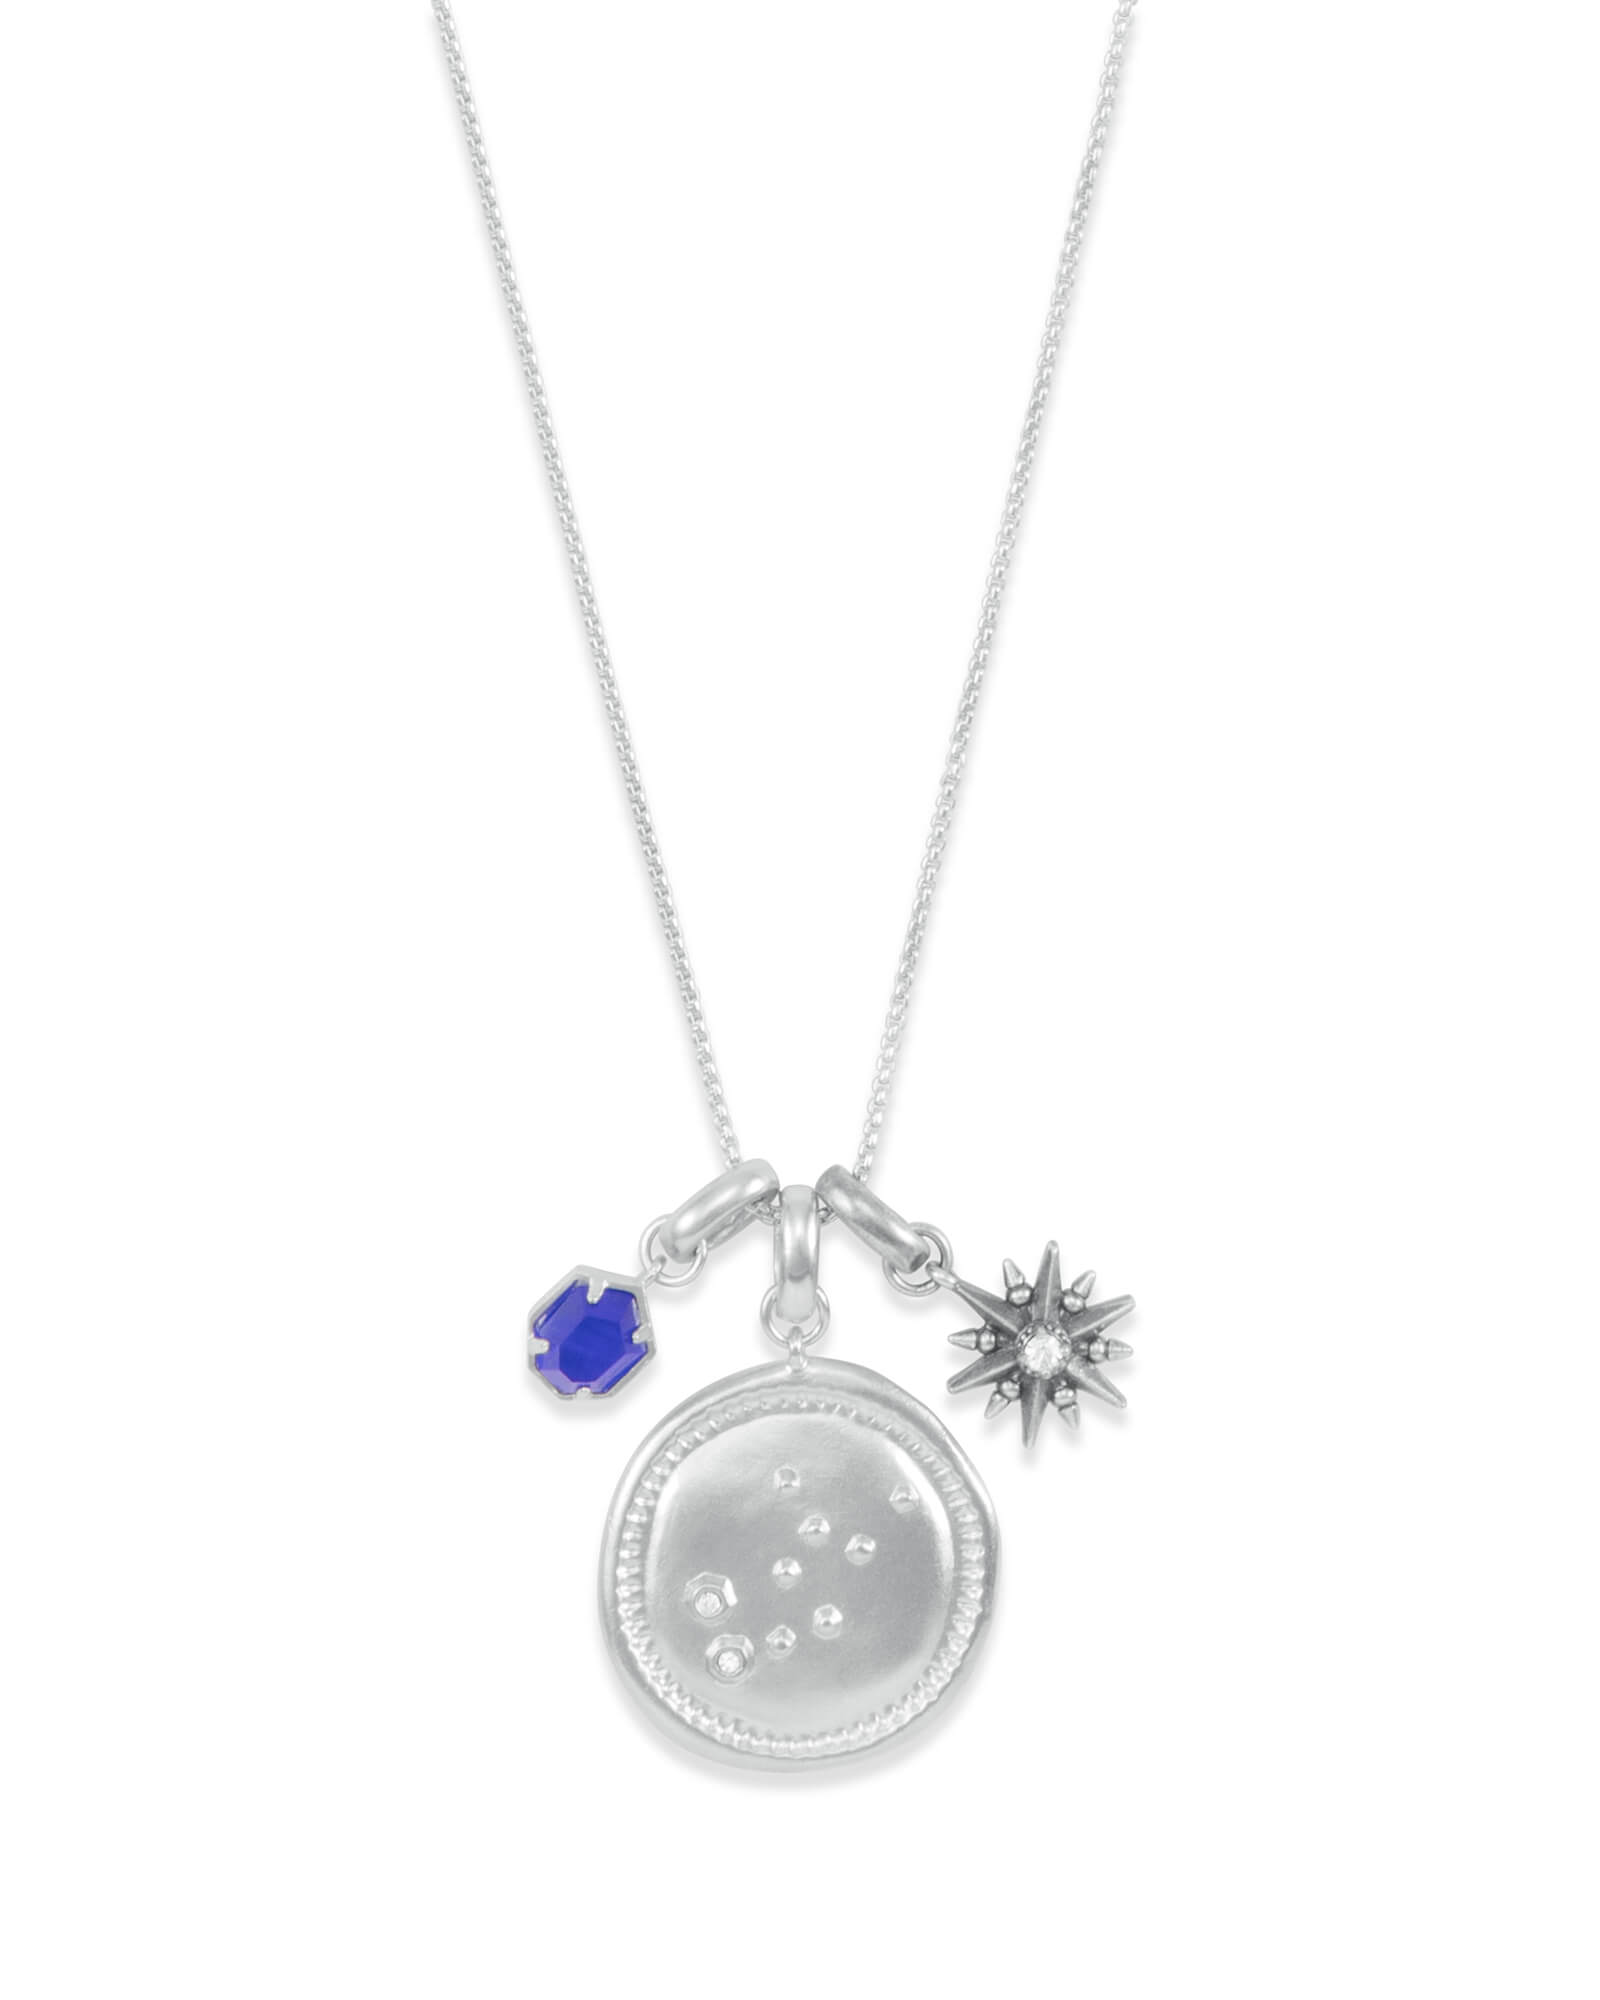 September Virgo Charm Necklace Set in Silver